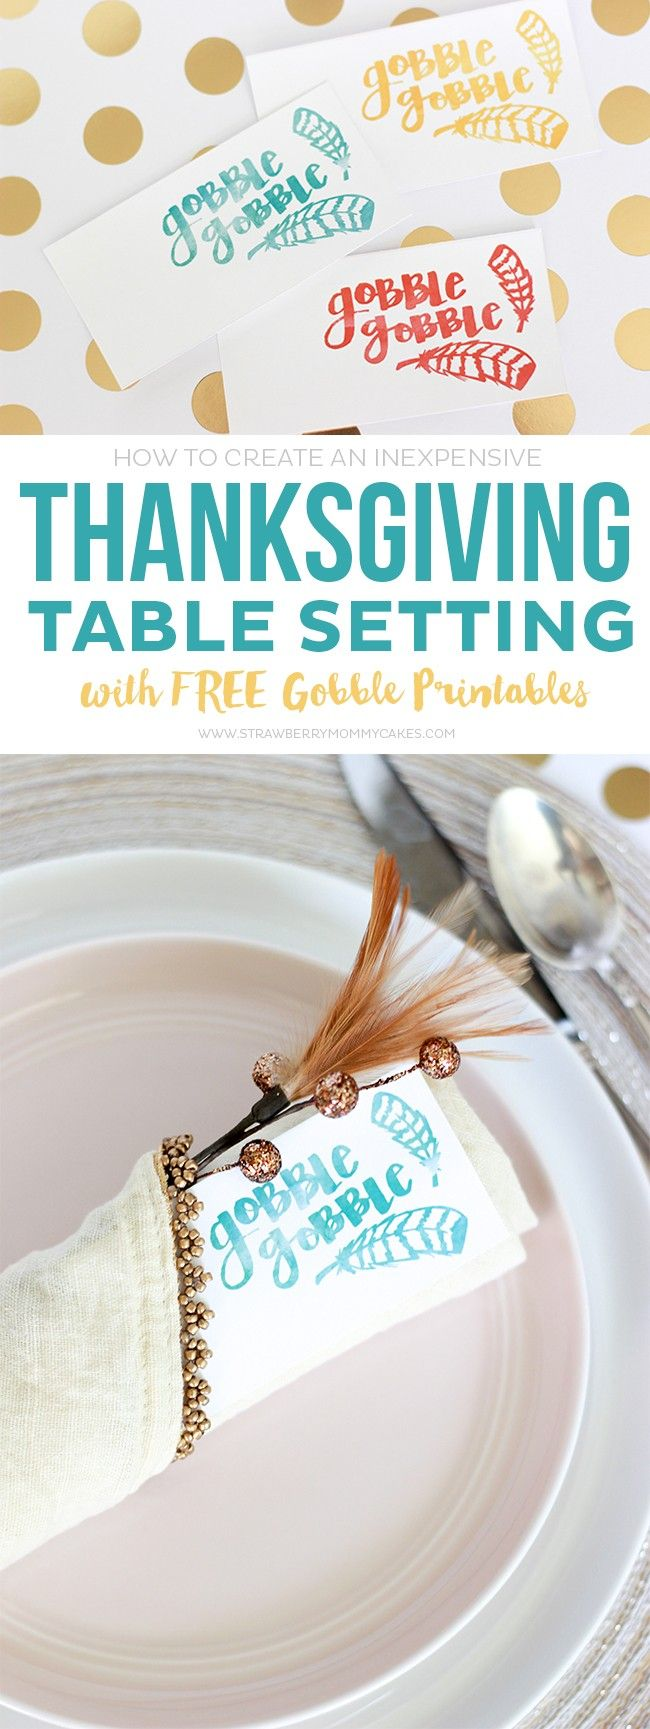 Learn How to Easily Create an Inexpensive Thanksgiving Table Setting that will wow your guest without breaking the bank!